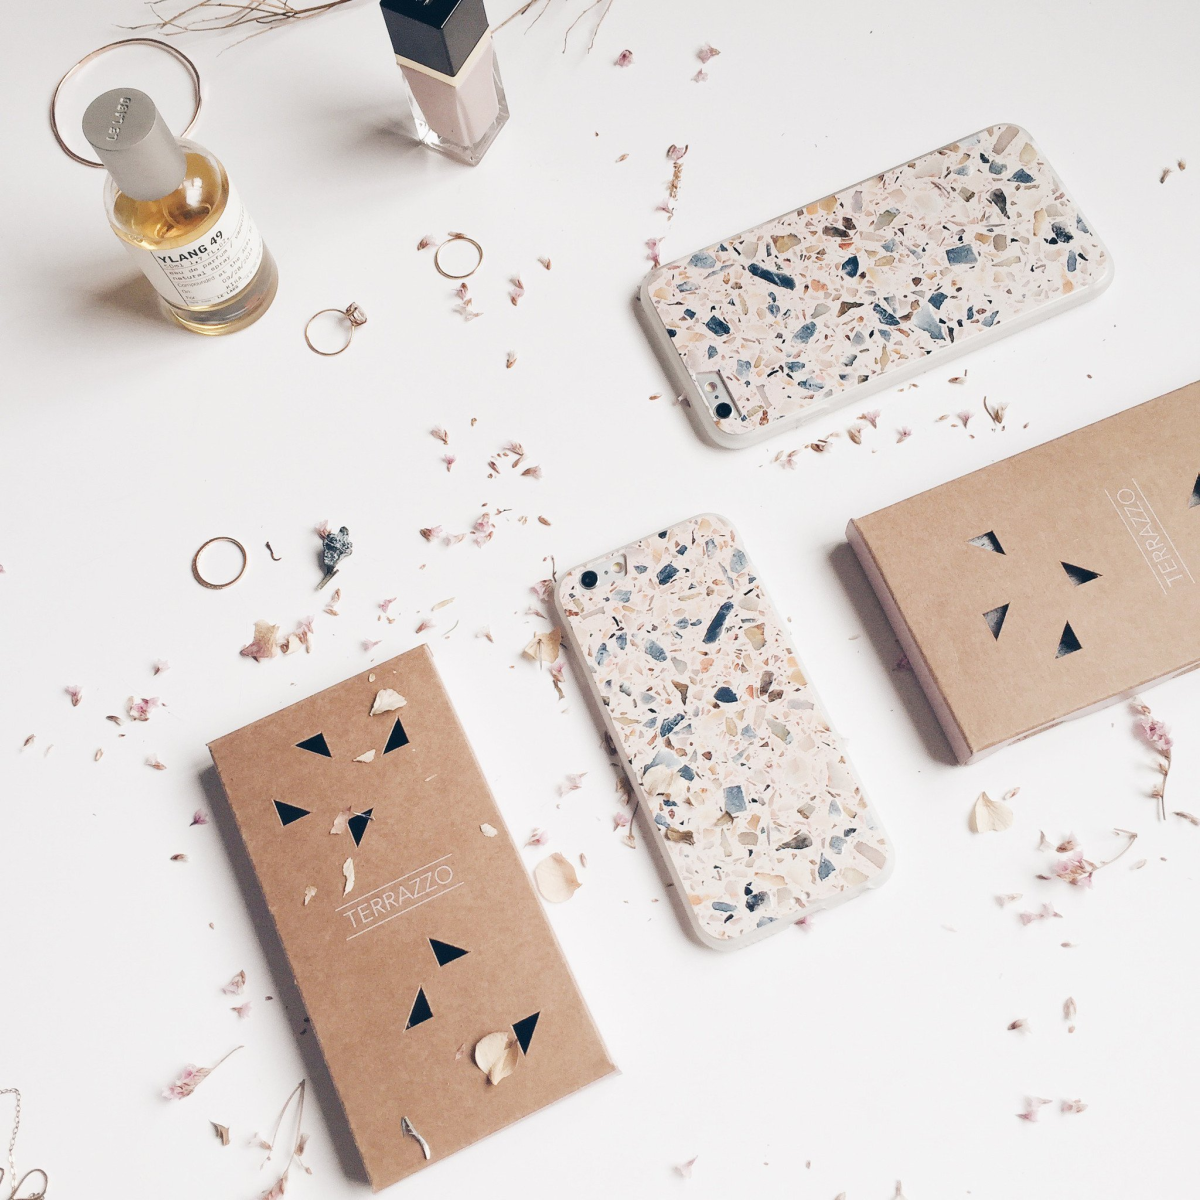 Terrazzo iPhone case from Form Maker